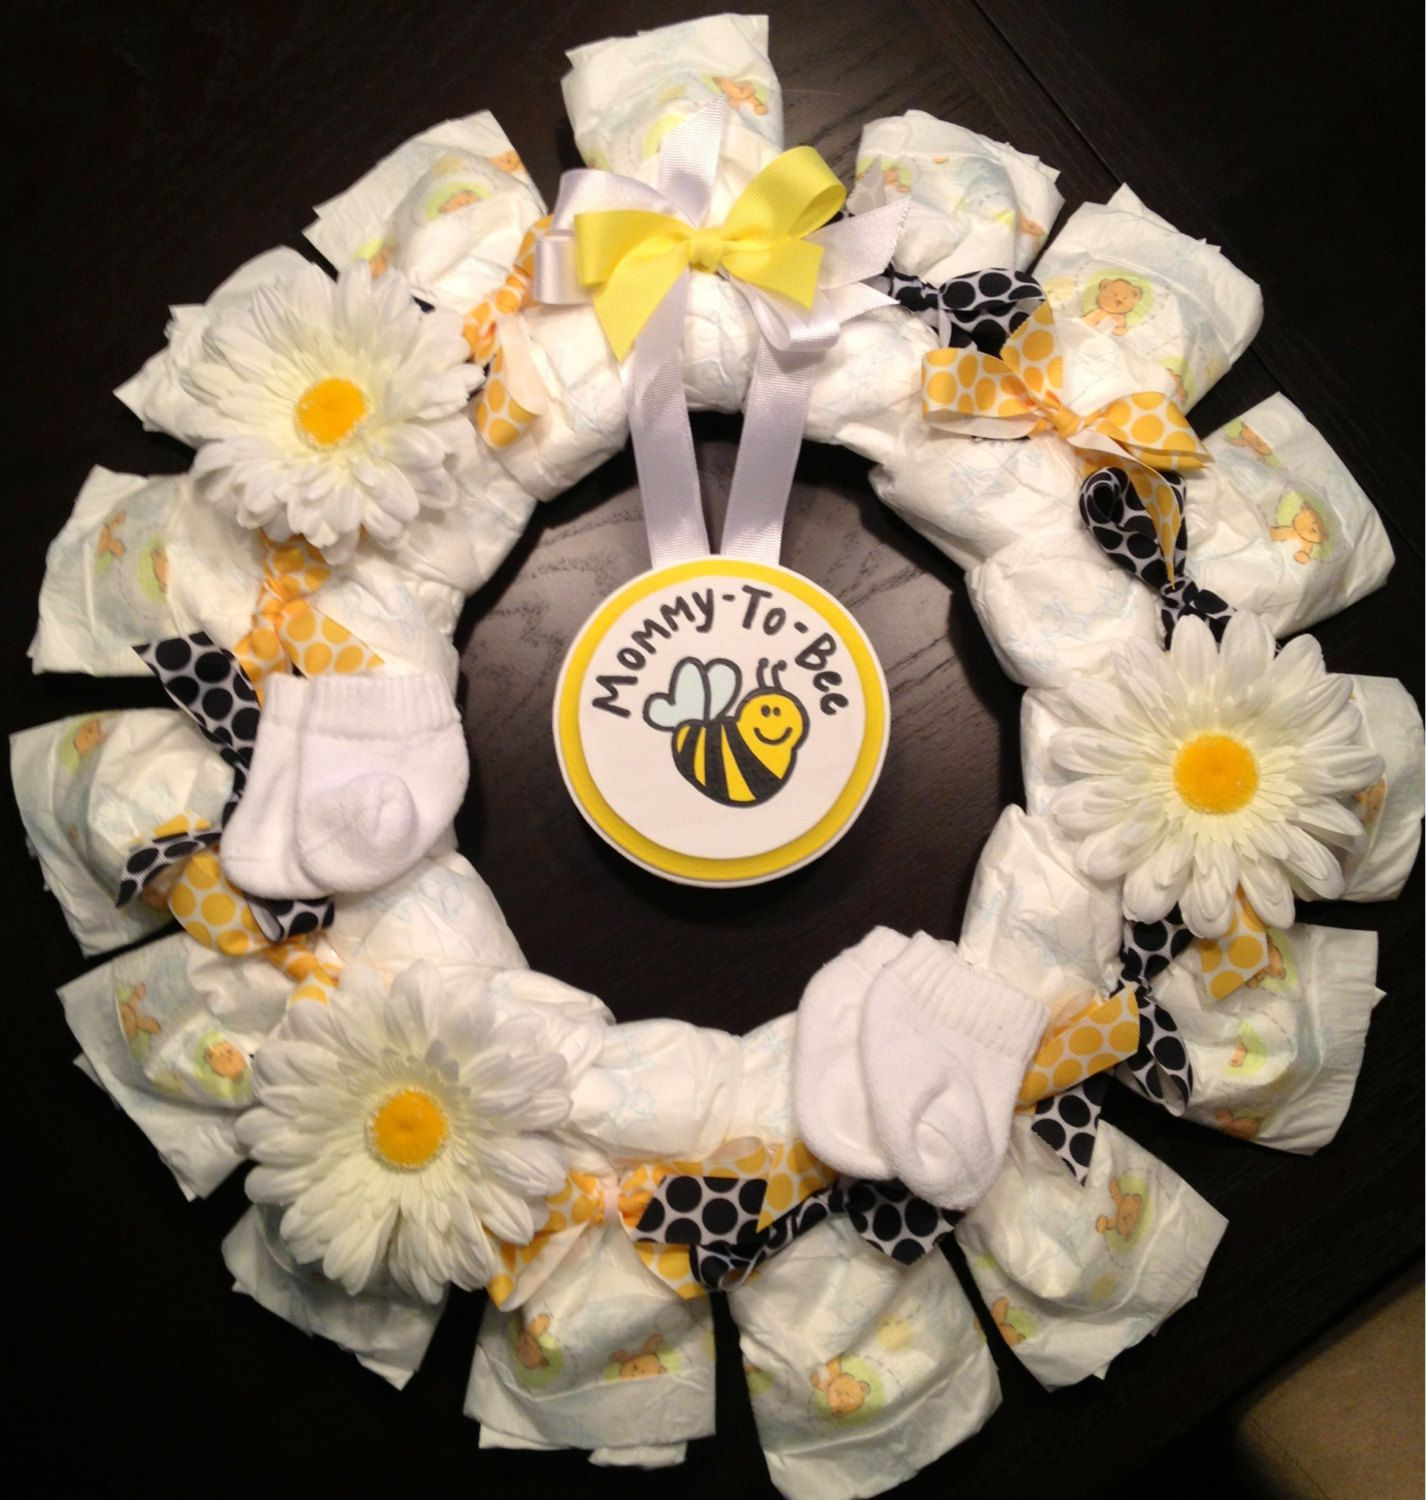 Baby gift wreath : Personalized diaper wreath baby shower gift custom